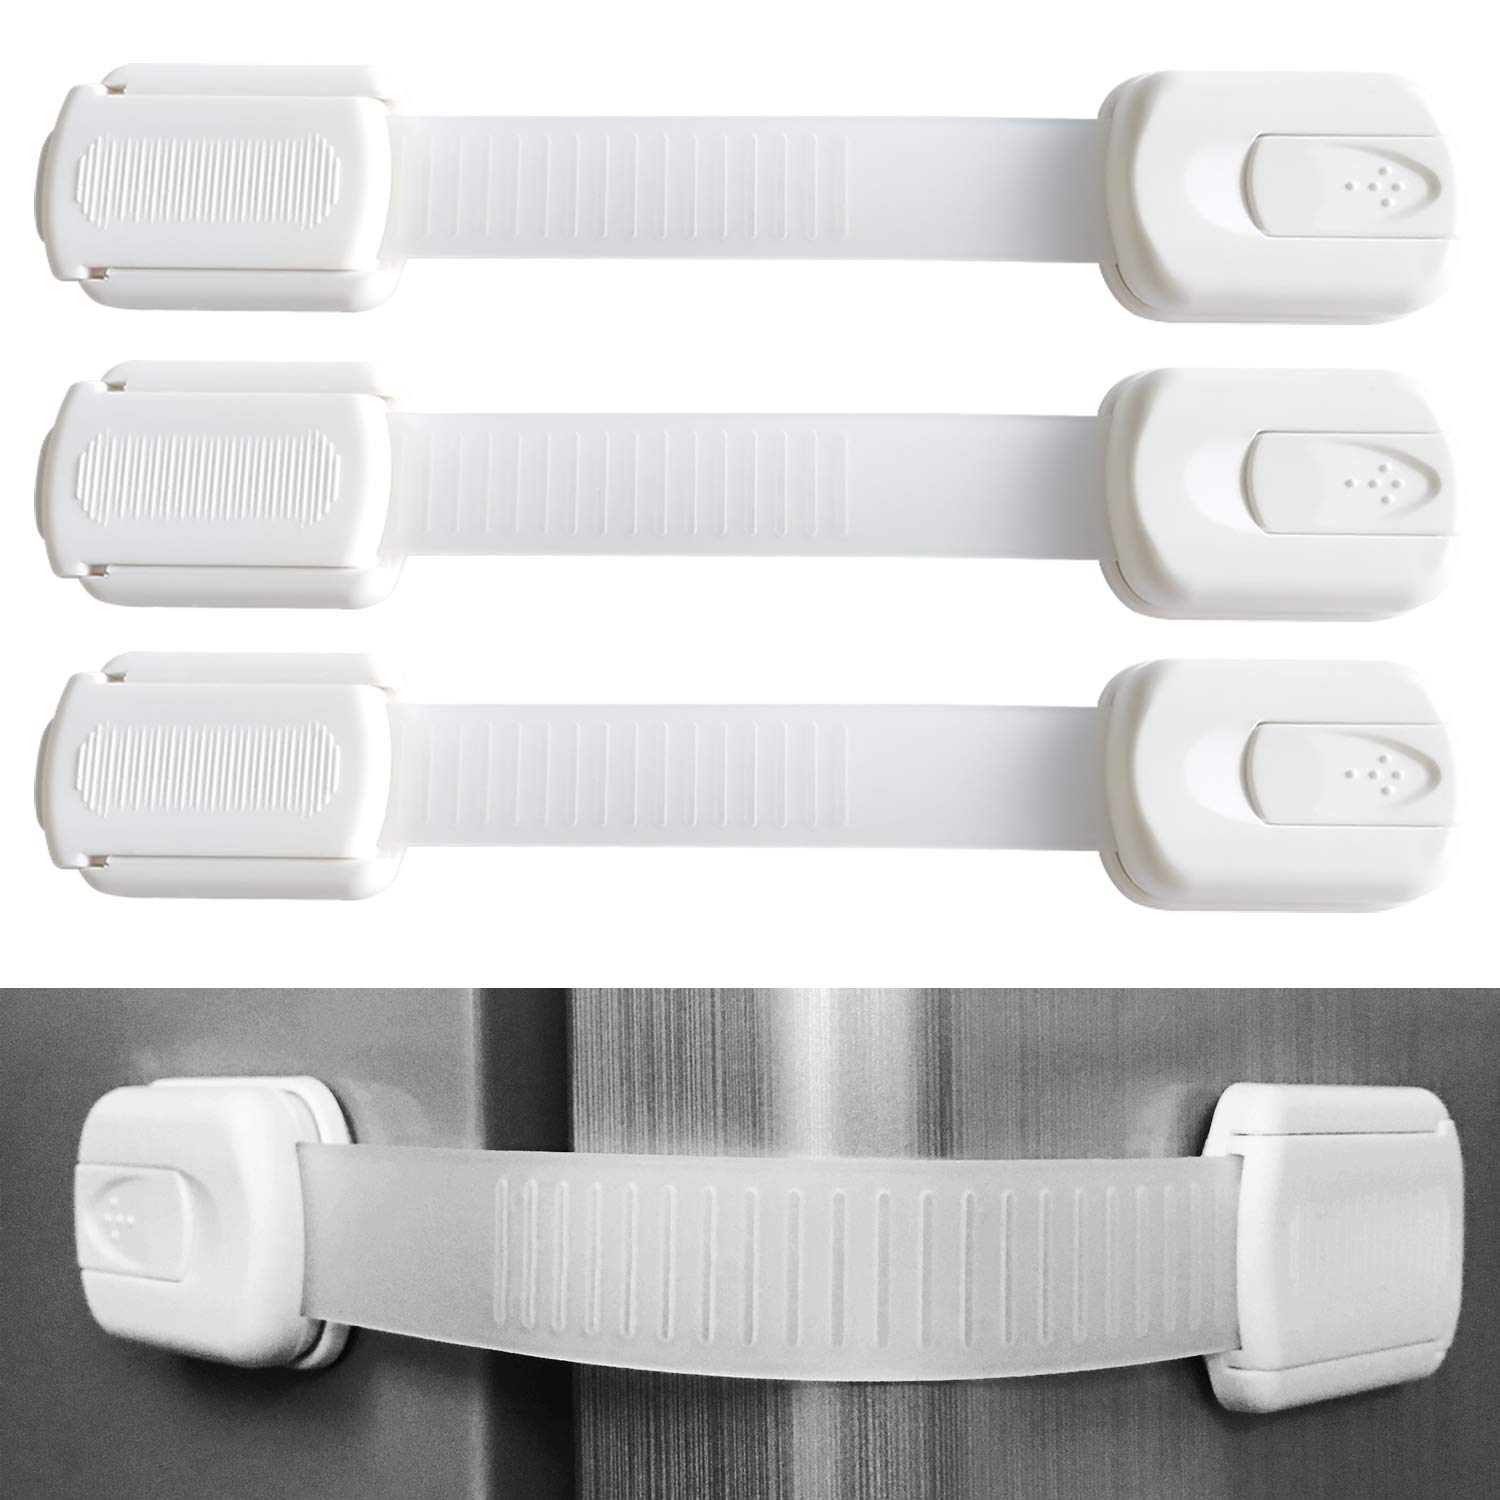 10 Pieces Adjustable Child Safety Lock, Baby Proofing Cabinet Lock, No Tools or Drilling, for Cabinets, Drawers, Appliances, Toilet Seat, Refrigerator, Oven, Window etc(7.5X1.4 Inch) White.